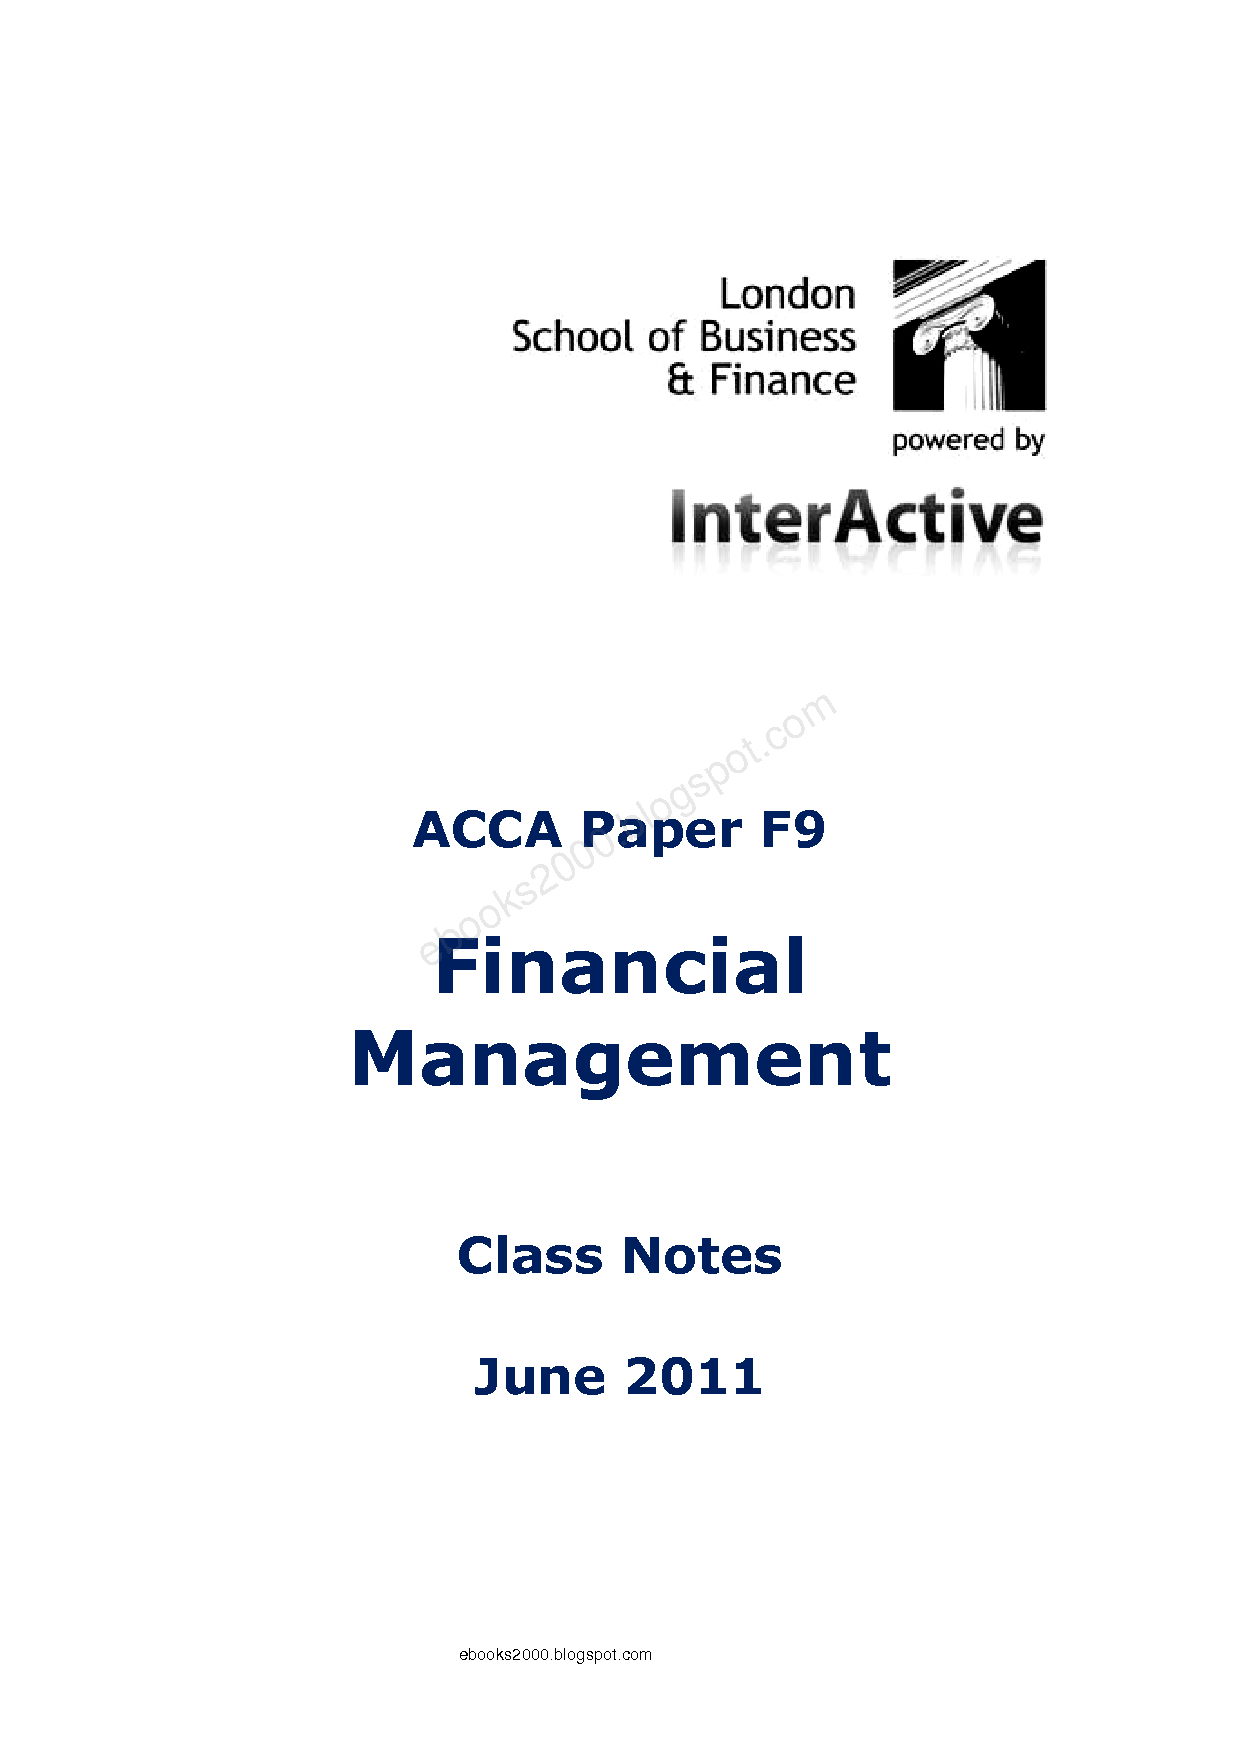 reaction paper about financial management Papers at this workshop, i take the domain of police organization and management to include how to staff, structure, direct, and equip public (local) police organizations 1 i have been asked specifically to cover the topics of recruitment, training, structure and.